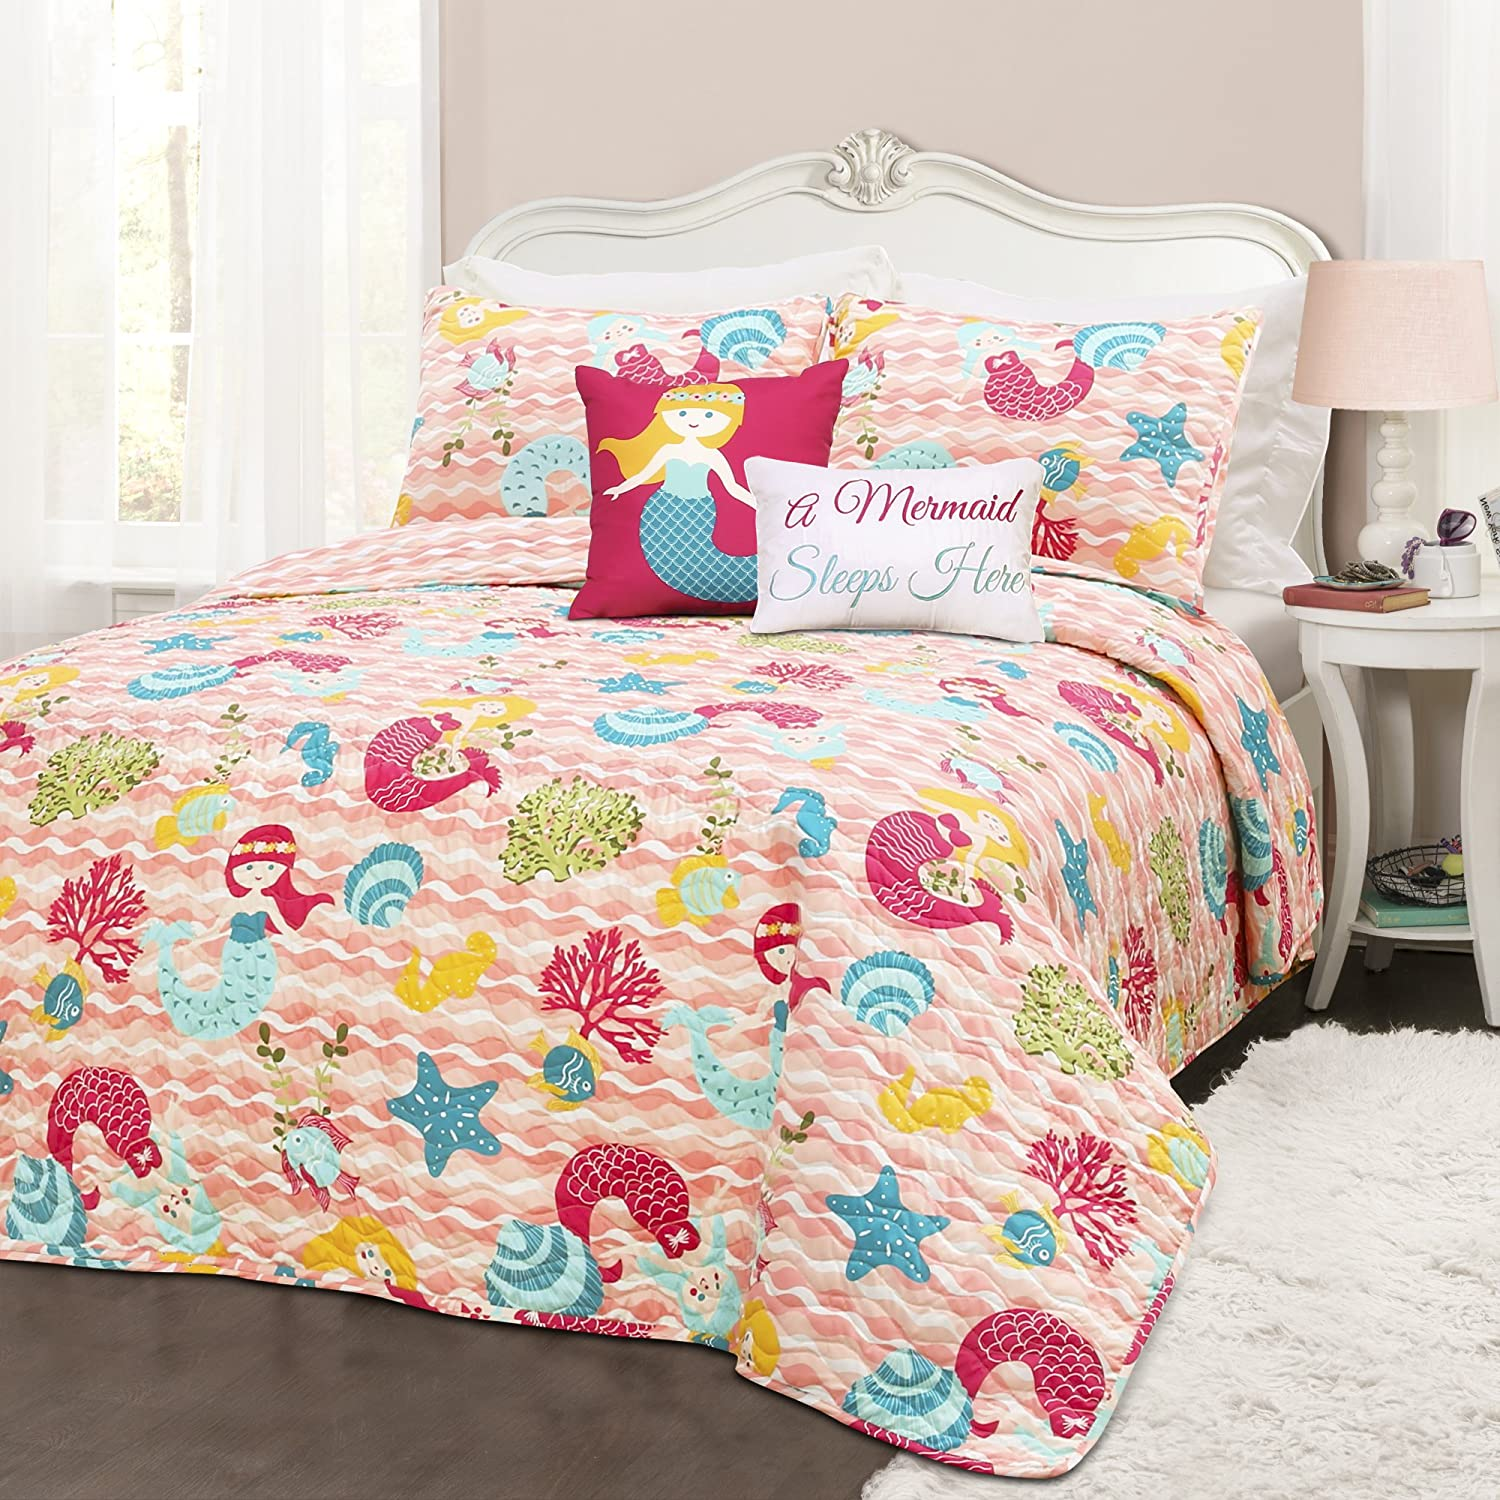 Lush Decor 4 Piece Mermaid Waves 4Piece Quilt Set, Twin, Pink